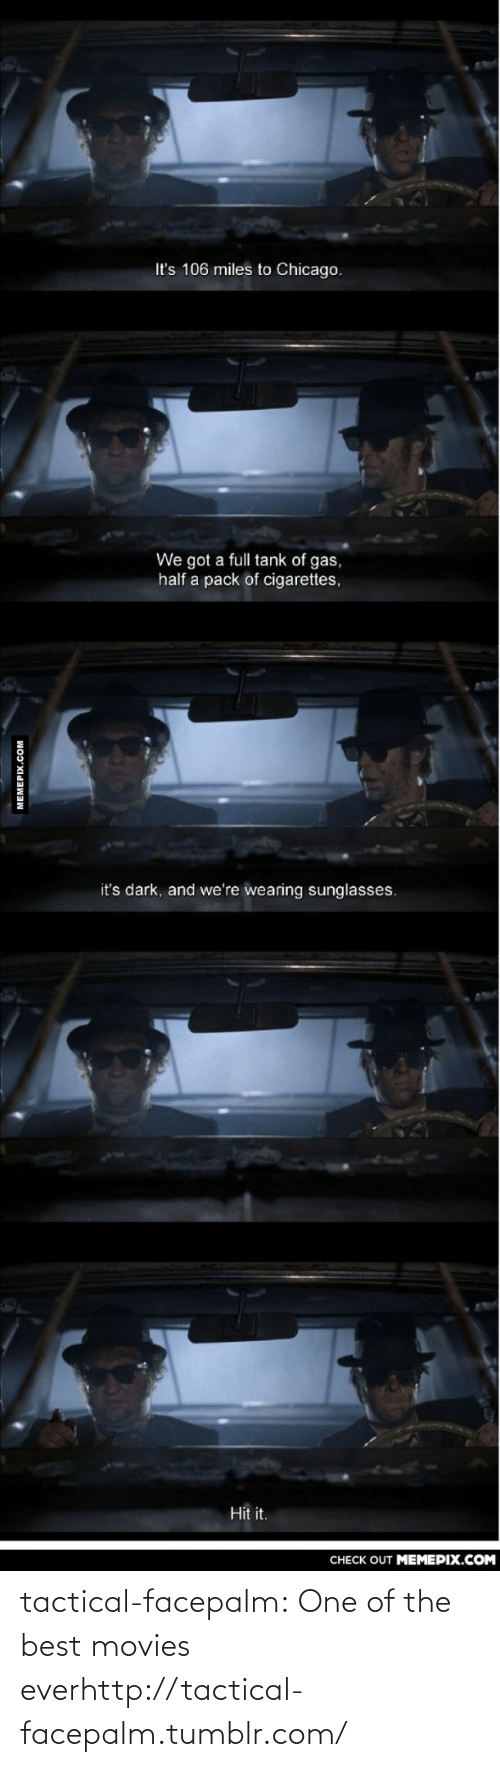 pack of cigarettes: It's 106 miles to Chicago.  We got a full tank of gas,  half a pack of cigarettes,  it's dark, and we're wearing sunglasses.  Hit it.  CHECK OUT MEMEPIX.COM  MEMEPIX.COM tactical-facepalm:  One of the best movies everhttp://tactical-facepalm.tumblr.com/